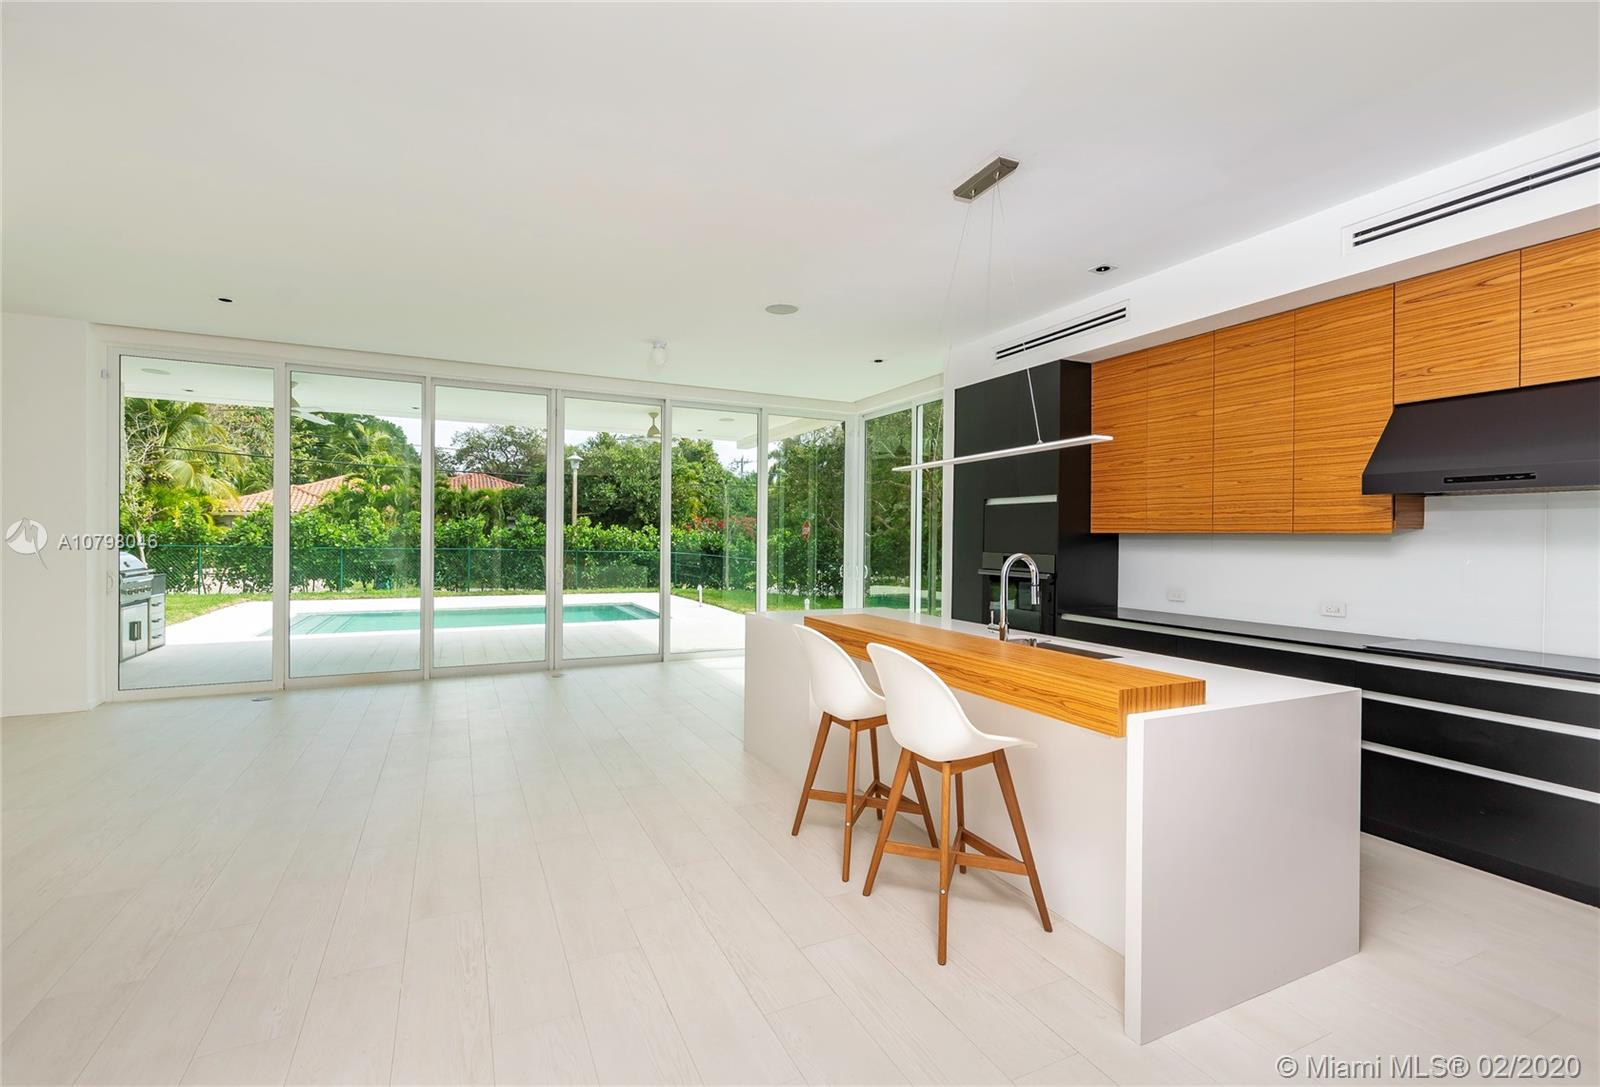 image #1 of property, Coco Grove